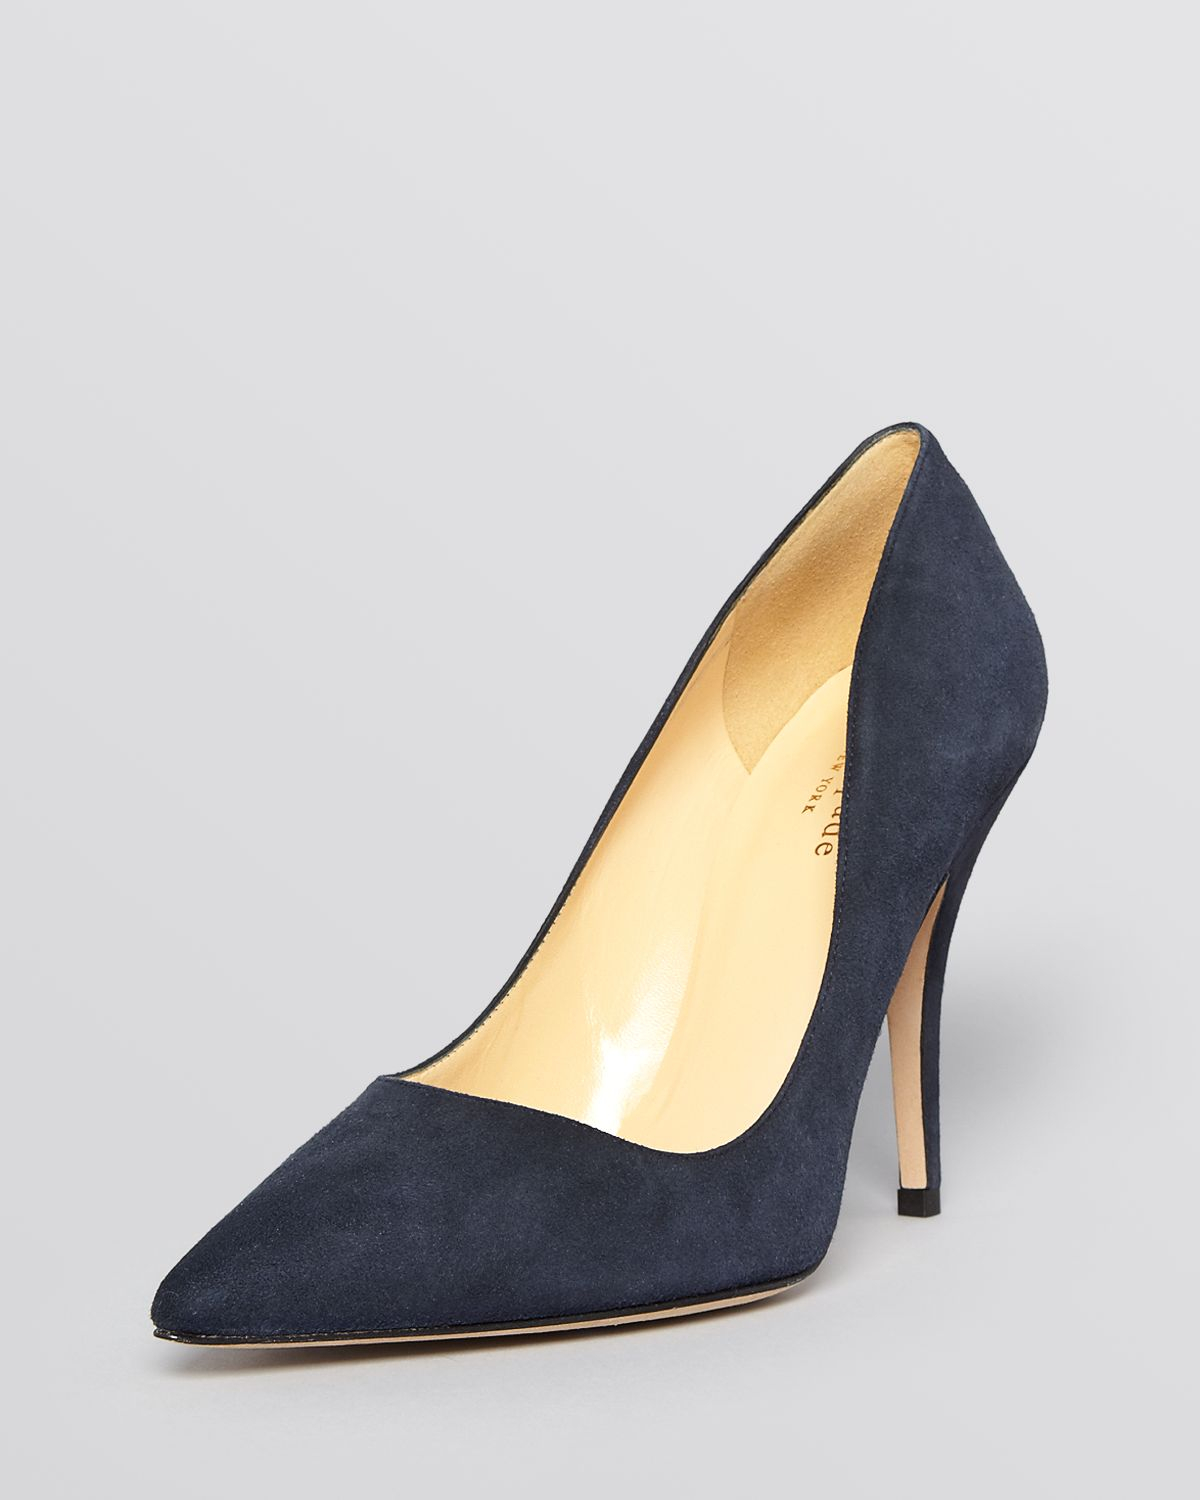 83715ae83628 Lyst kate spade pointed toe pumps licorice high heel in blue jpg 1200x1500  Black pumps kate